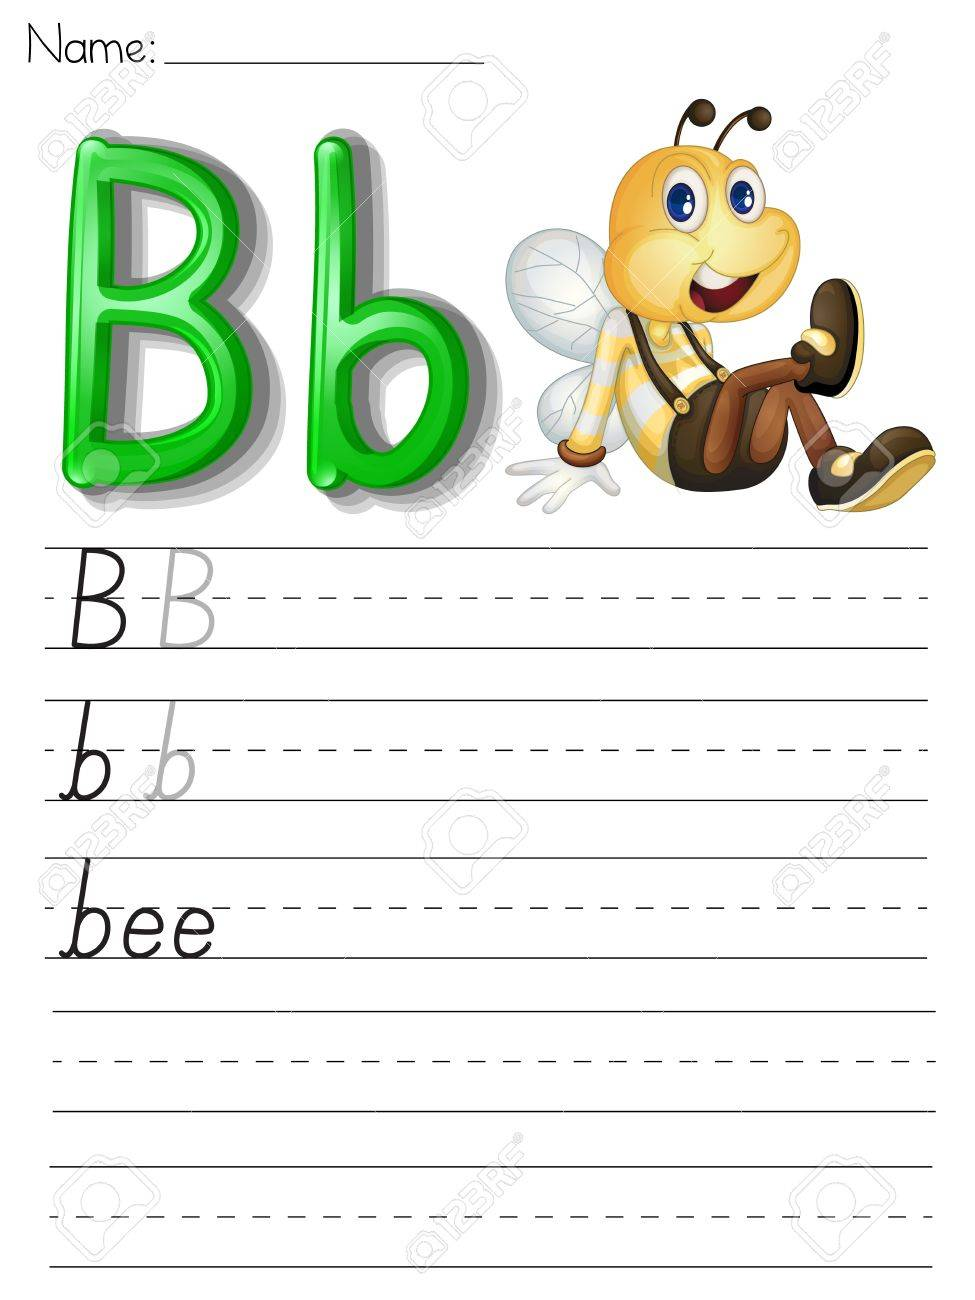 Alphabet Worksheet On White Paper Royalty Free Cliparts, Vectors  grade worksheets, math worksheets, education, multiplication, alphabet worksheets, and learning Phonetic Alphabet Worksheet 1300 x 975